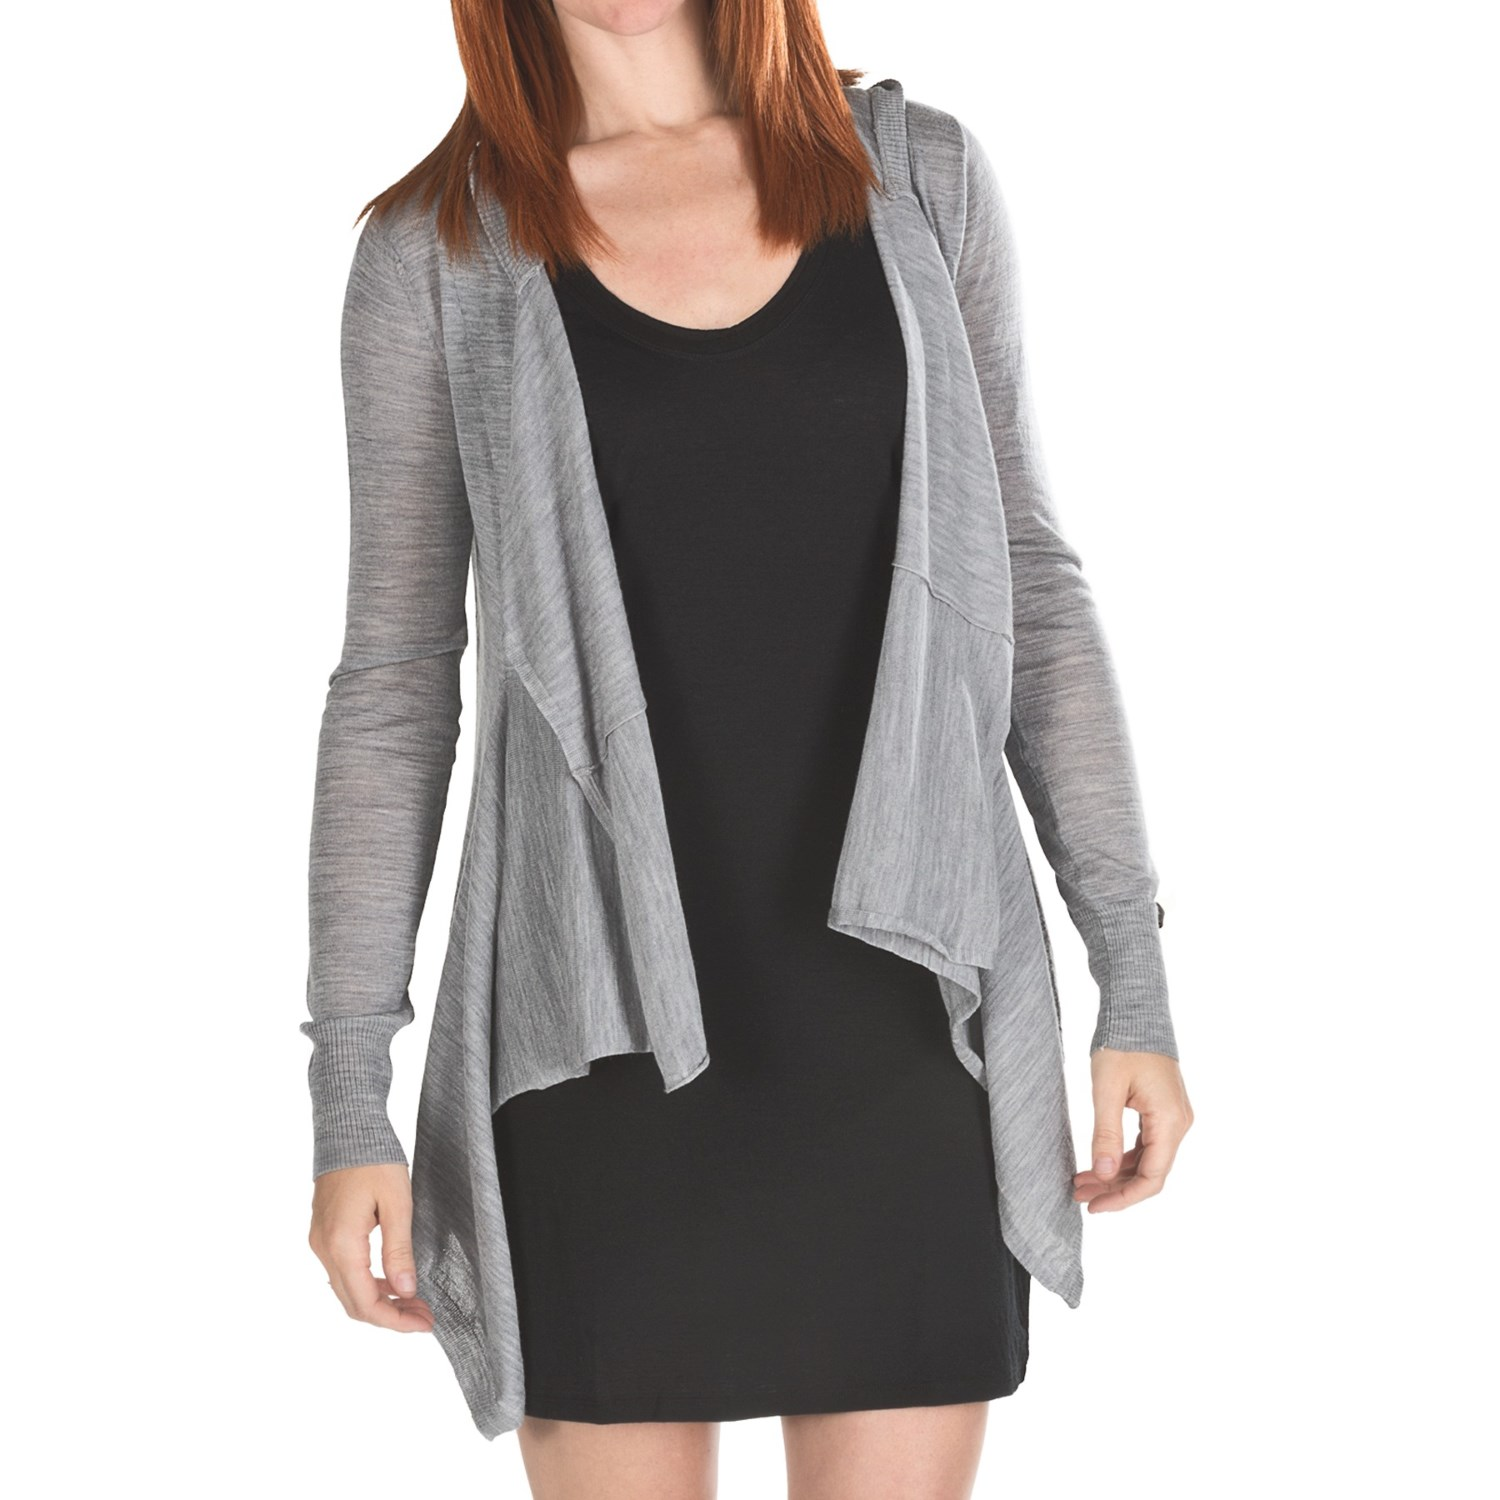 Some cardigans are wardrobe staples, while other cardigans make a statement. One of our favorite styles is the duster, a cardigan that is long, open and flowy. Try a duster cardigan for a fun look that strikes the balance between work life and everyday casual.